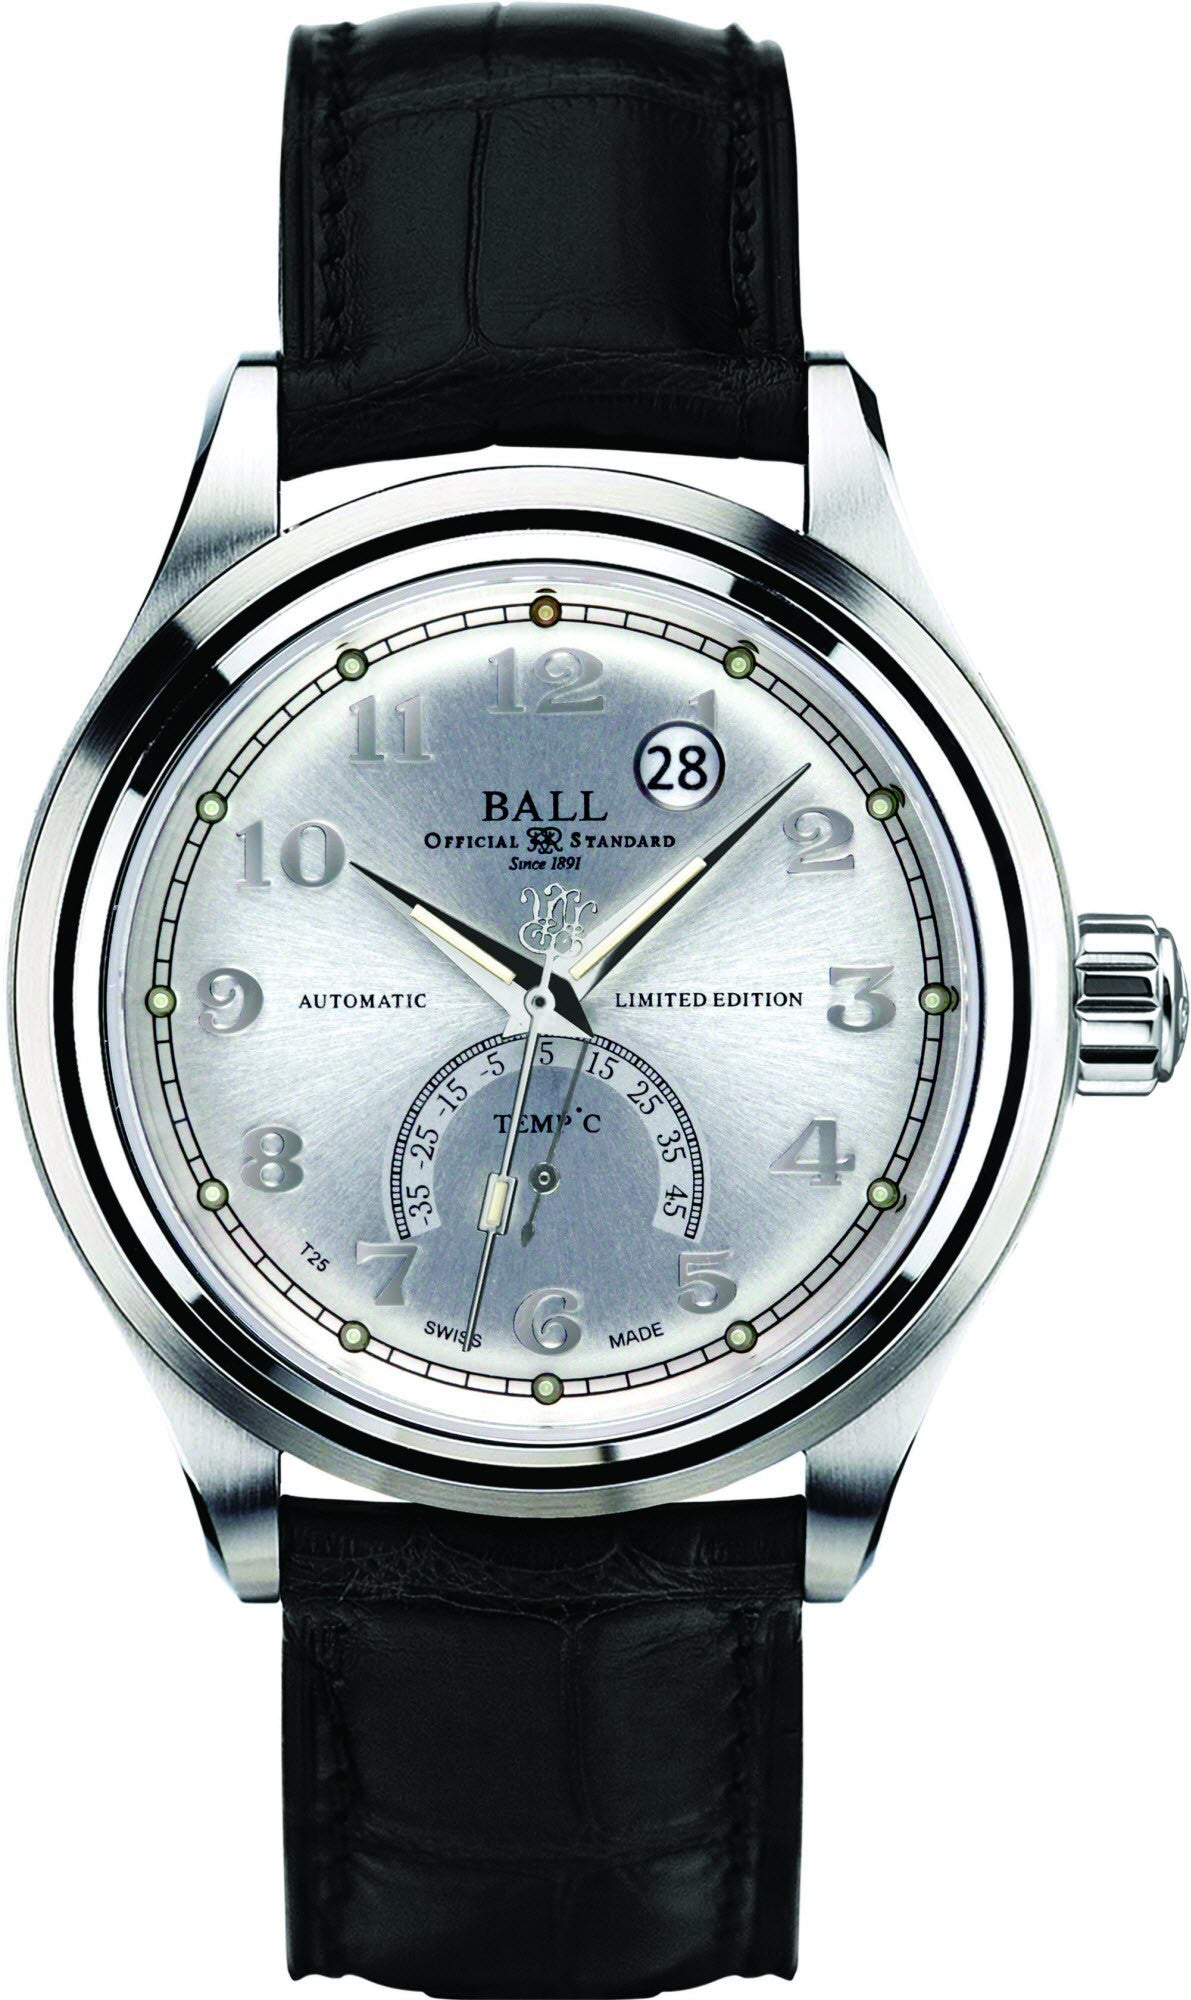 Ball Watch Company Trainmaster Celcius Limited Edition D